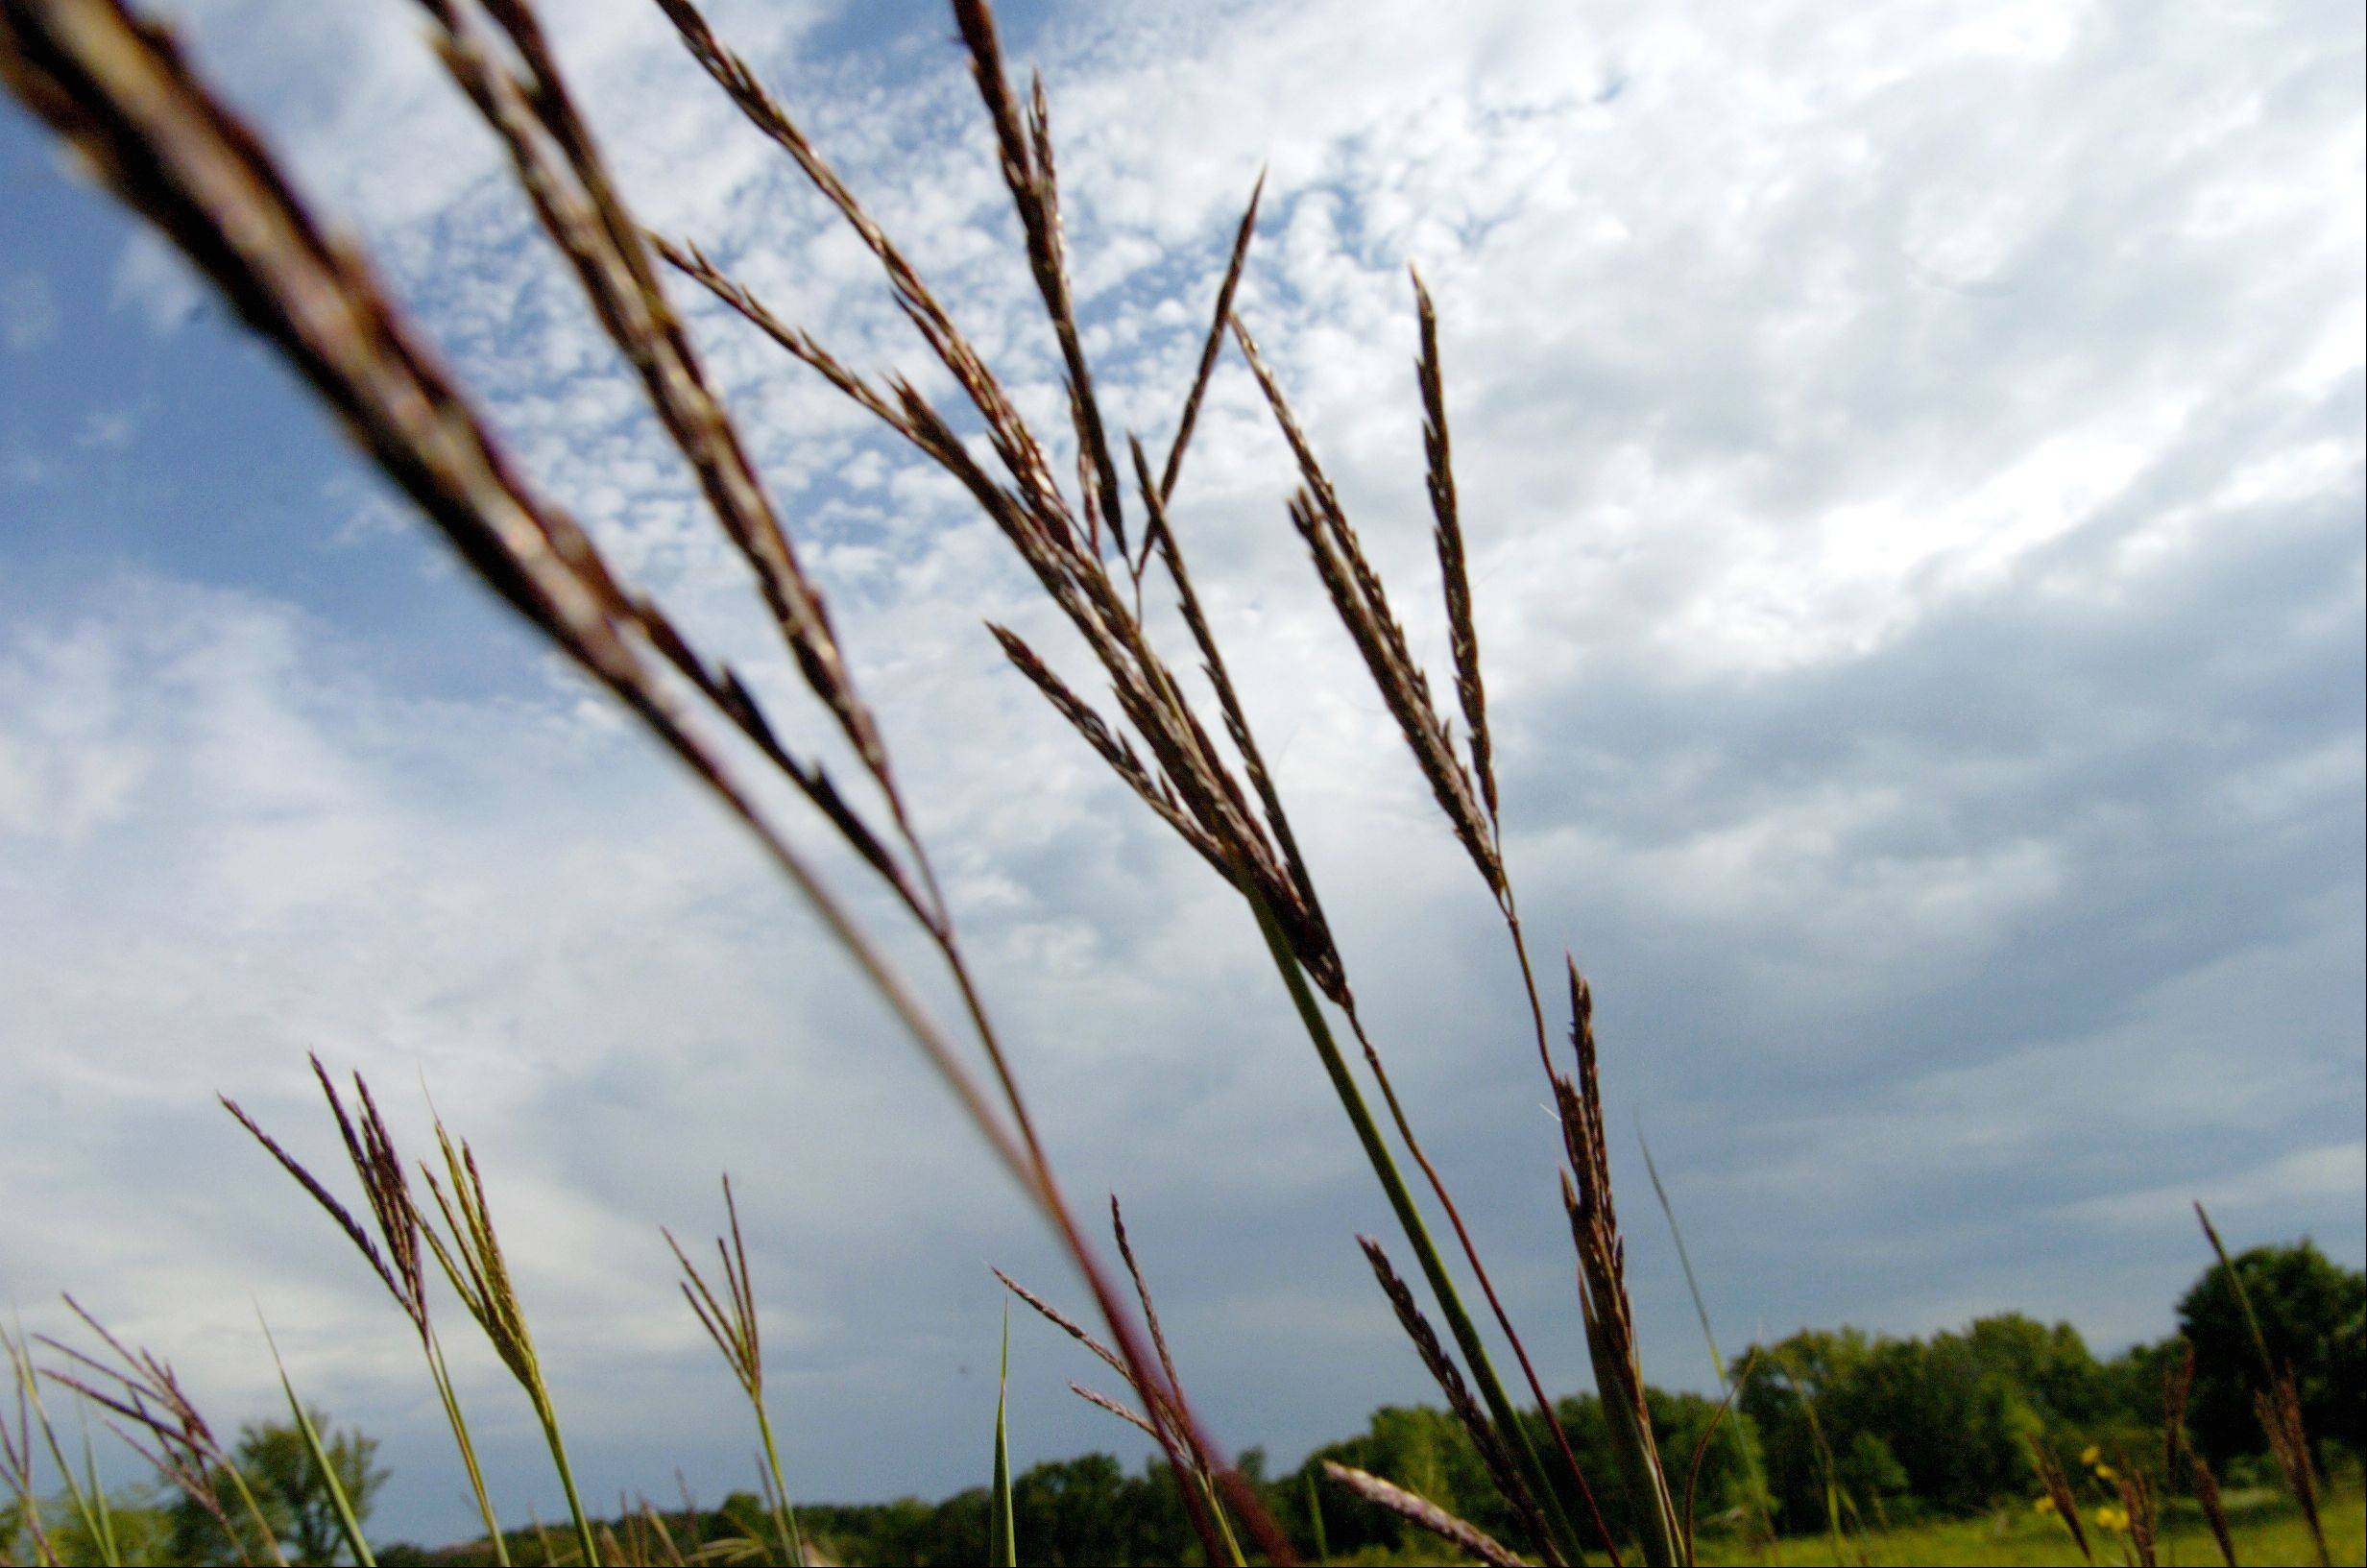 Big Bluestem (Andropogon gerardi), nicknamed Turkey Foot, waves in the breeze of an approaching storm at LeRoy Oakes Forest Preserve's Horlock Prairie.